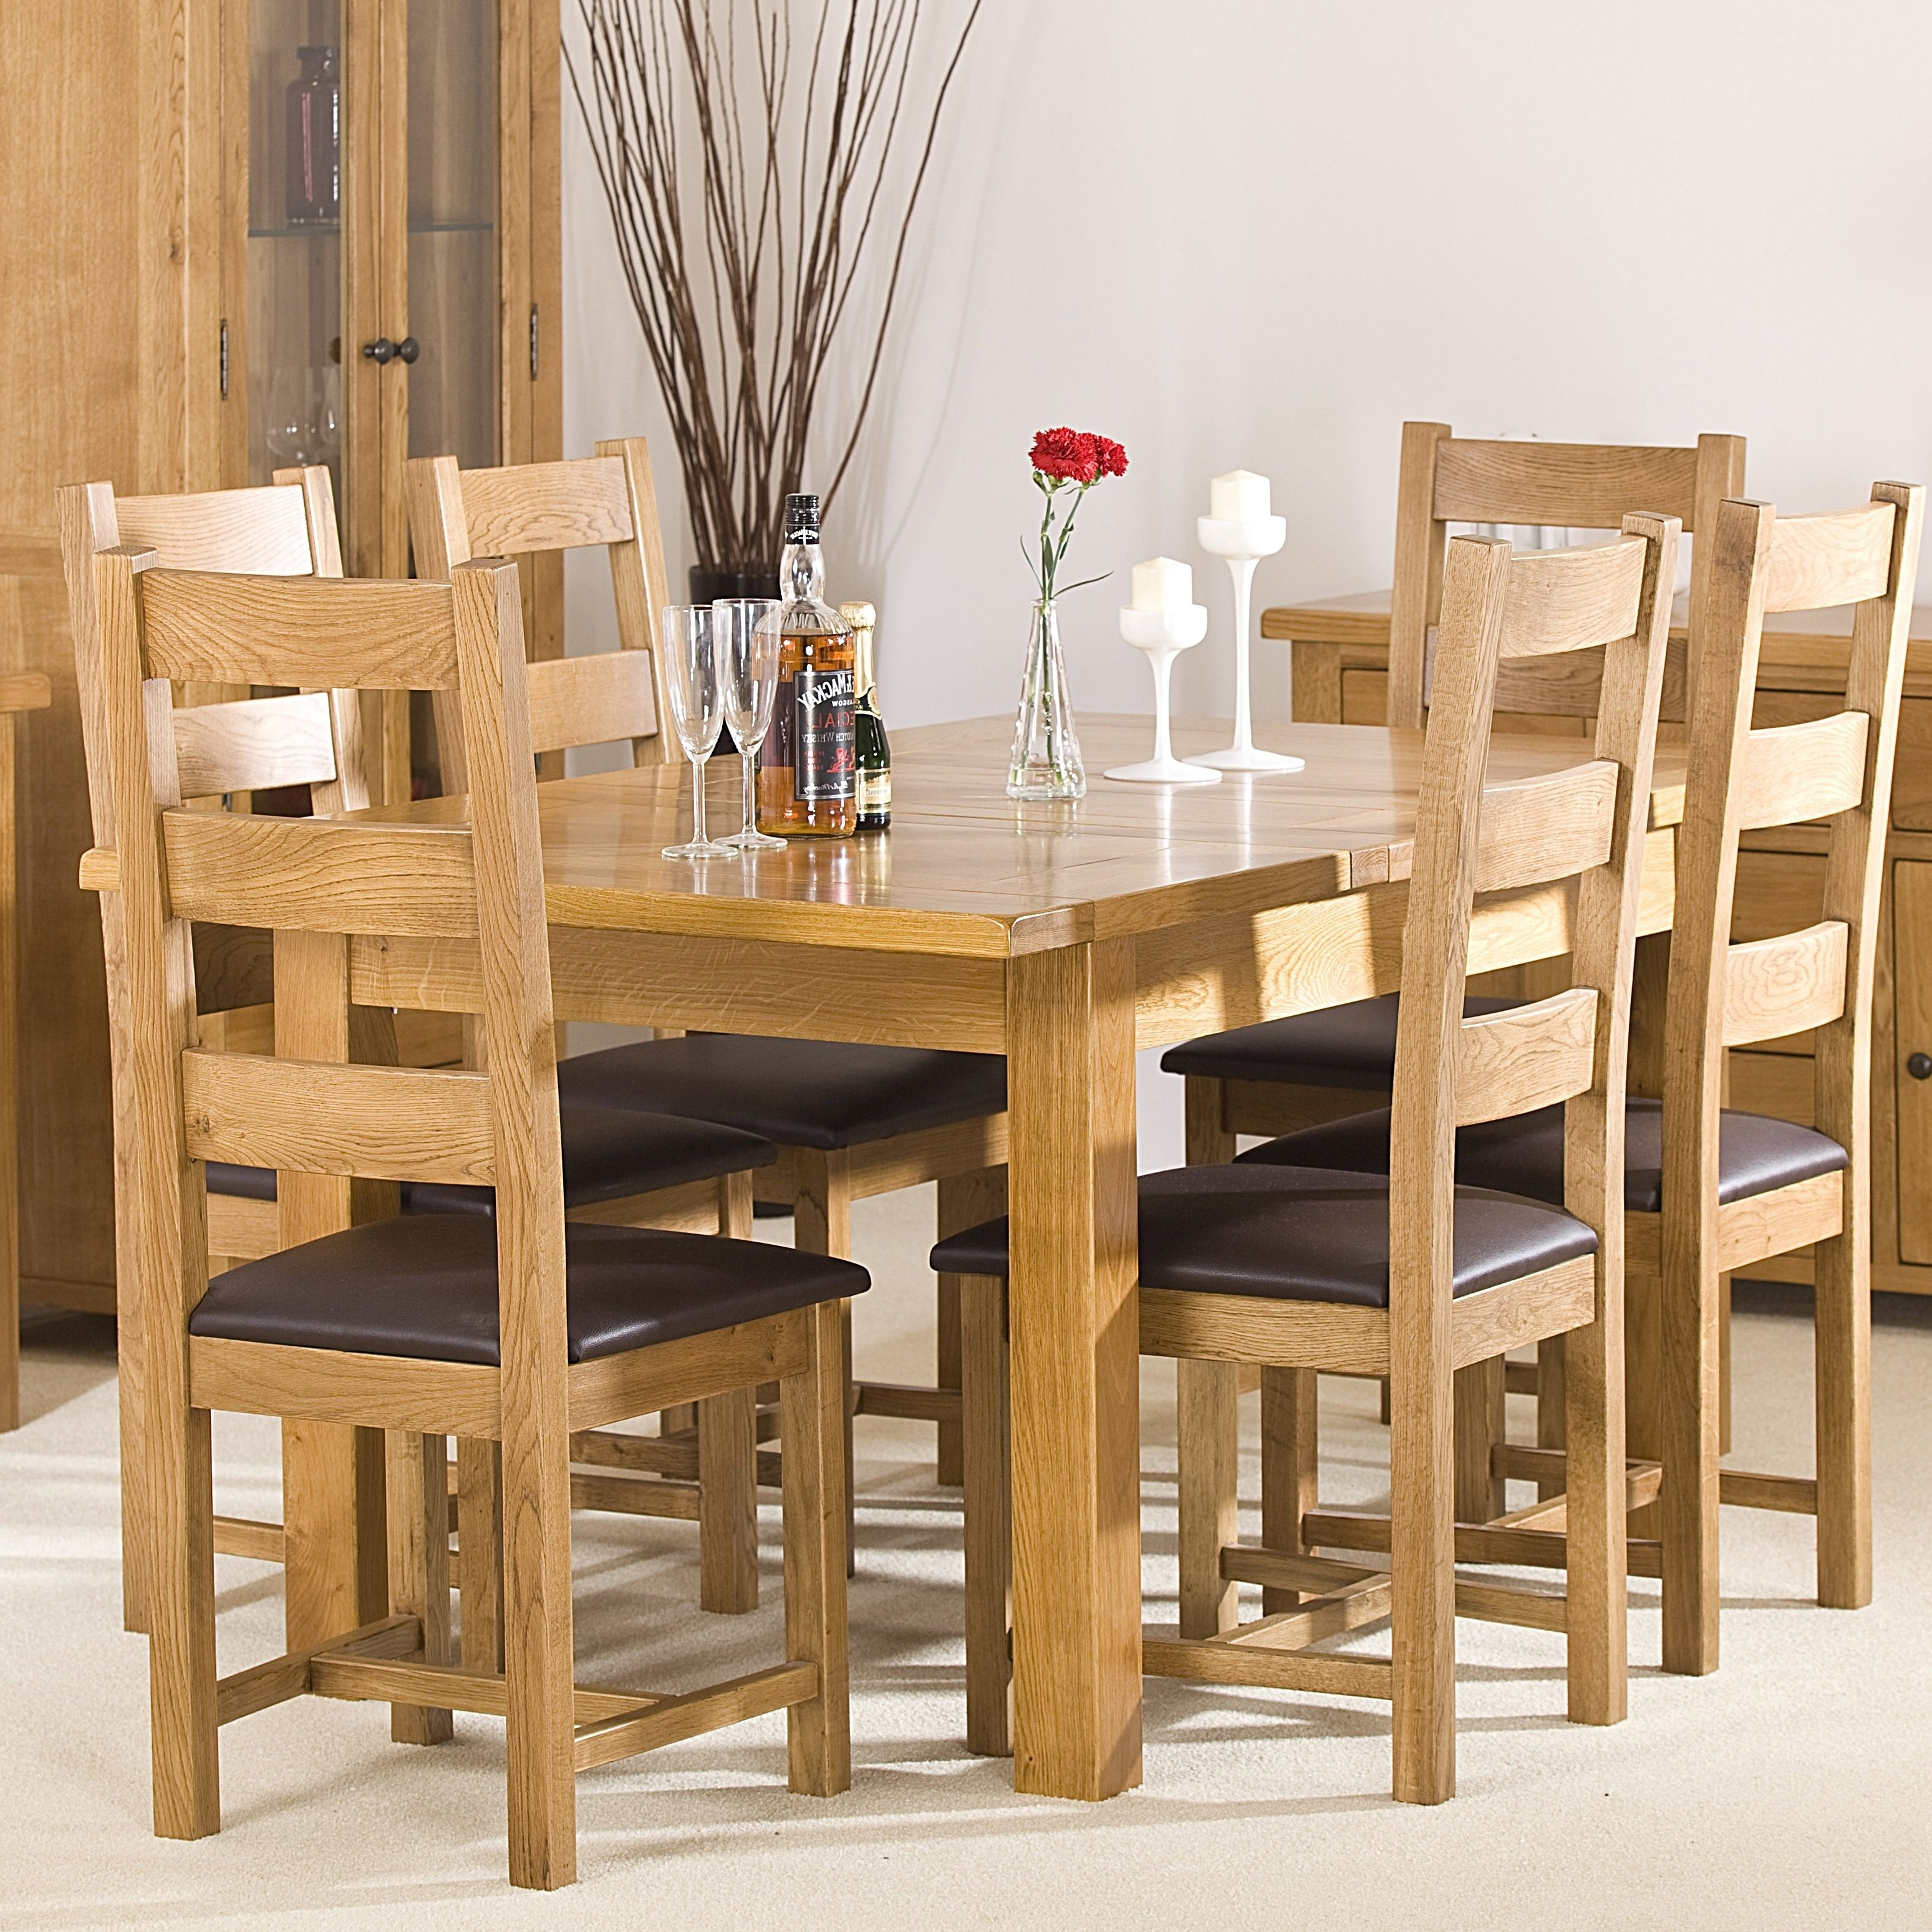 Latest Extendable Dining Tables 6 Chairs In Homestead Living Extendable Dining Table And 6 Chairs (View 14 of 25)